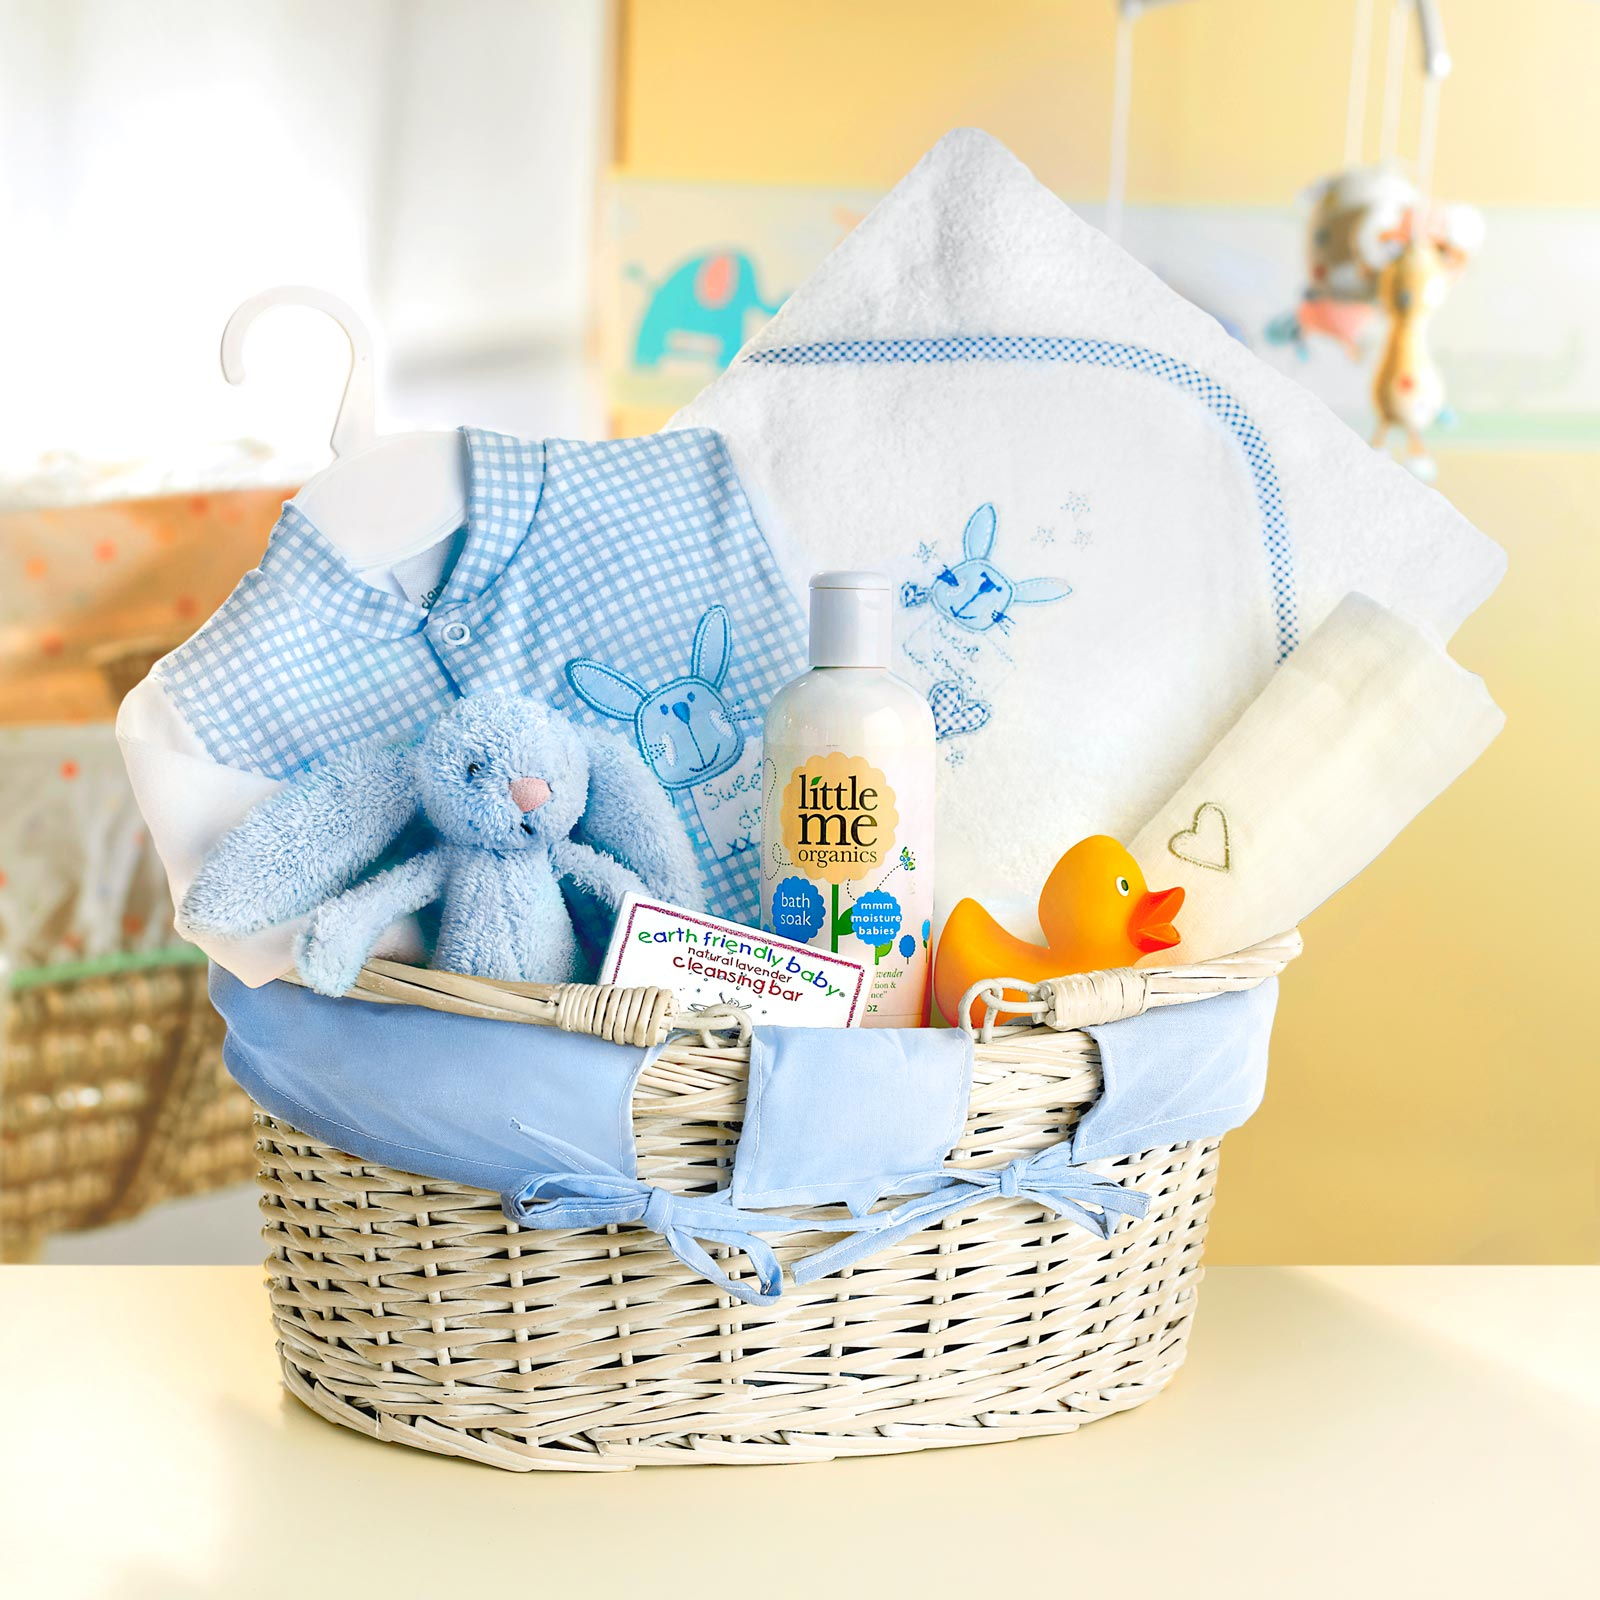 Rub-A-Dub-Dub Bath Time Baby Hamper In Blue - Regency Hampers